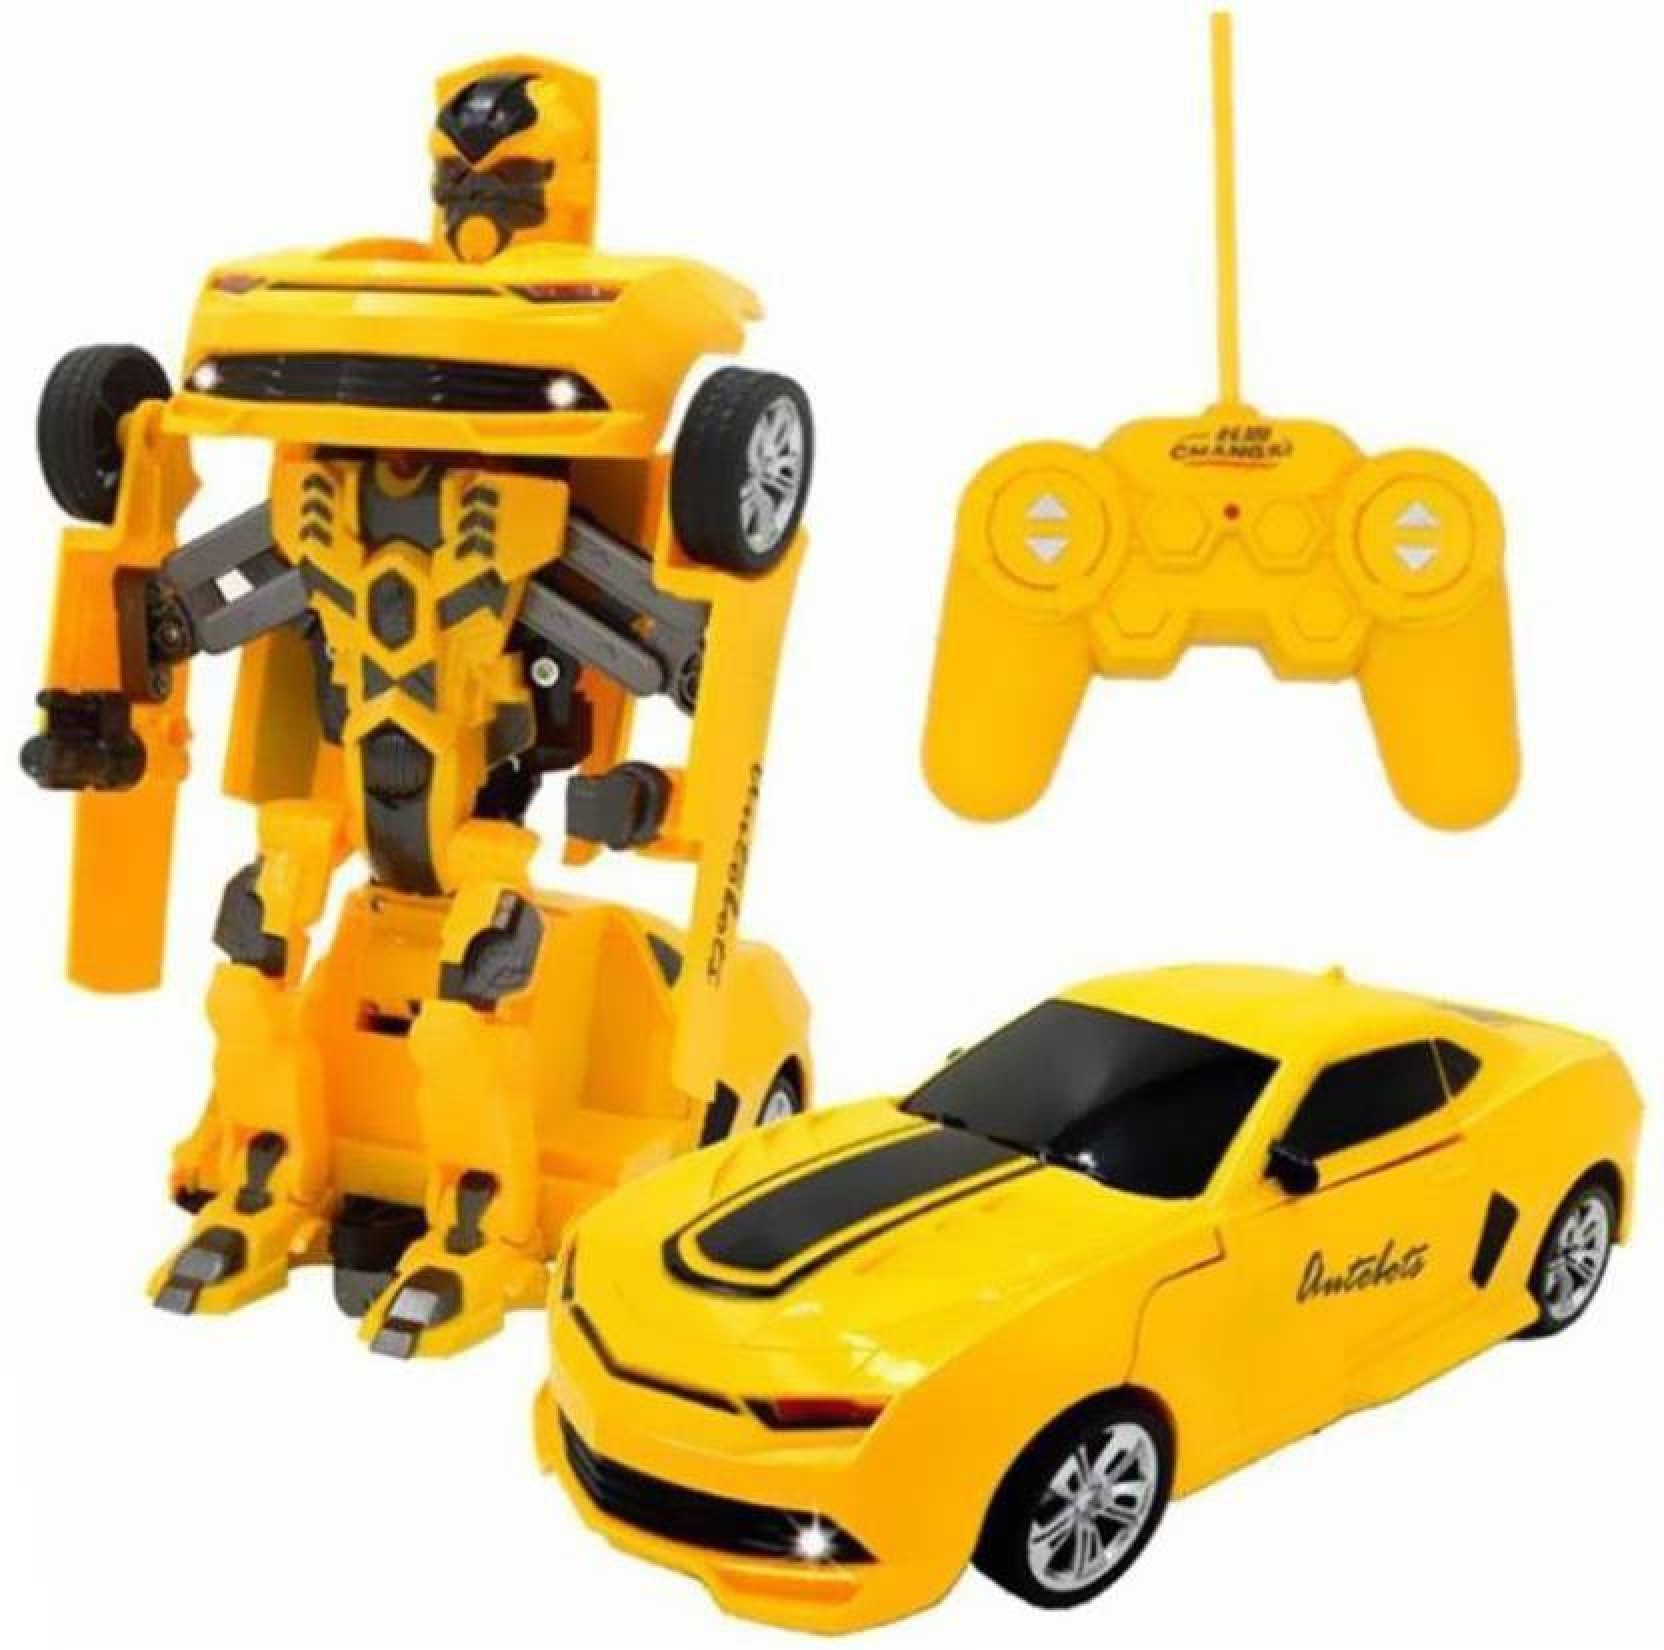 A R ENTERPRISES Rechargeable RC Bumble Bee Transformer Robot Toy